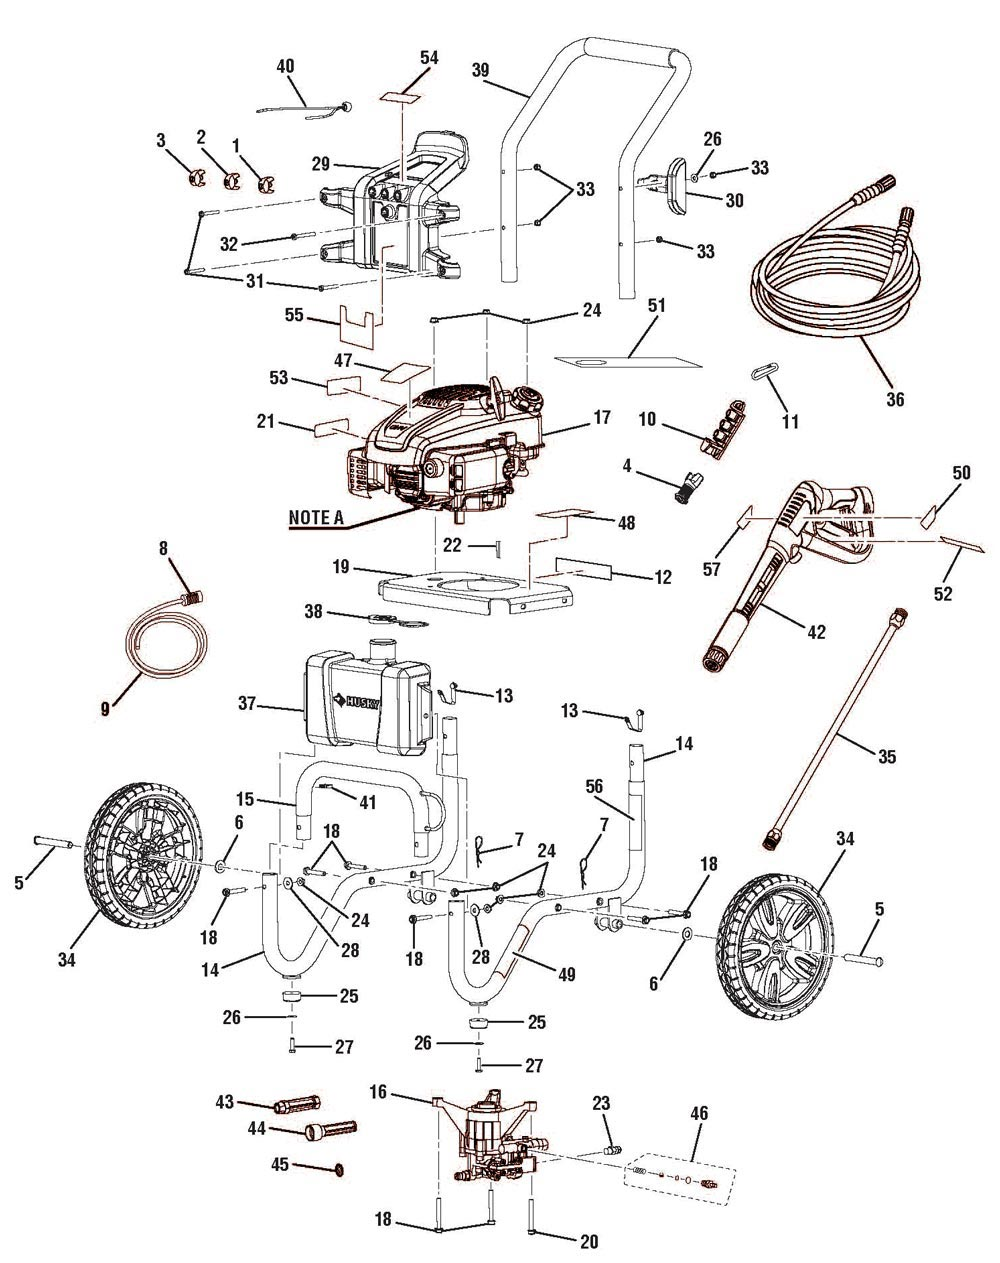 assignmentsweb   civil bendingmomentdiagram likewise Circuit For Alternator Regulator besides Lighted Rocker Switch Wiring Diagram additionally AG9tZWxpdGUgZ2VuZXJhdG9ycw additionally Husky 1750 pressure washer parts diagram. on subaru generator diagram